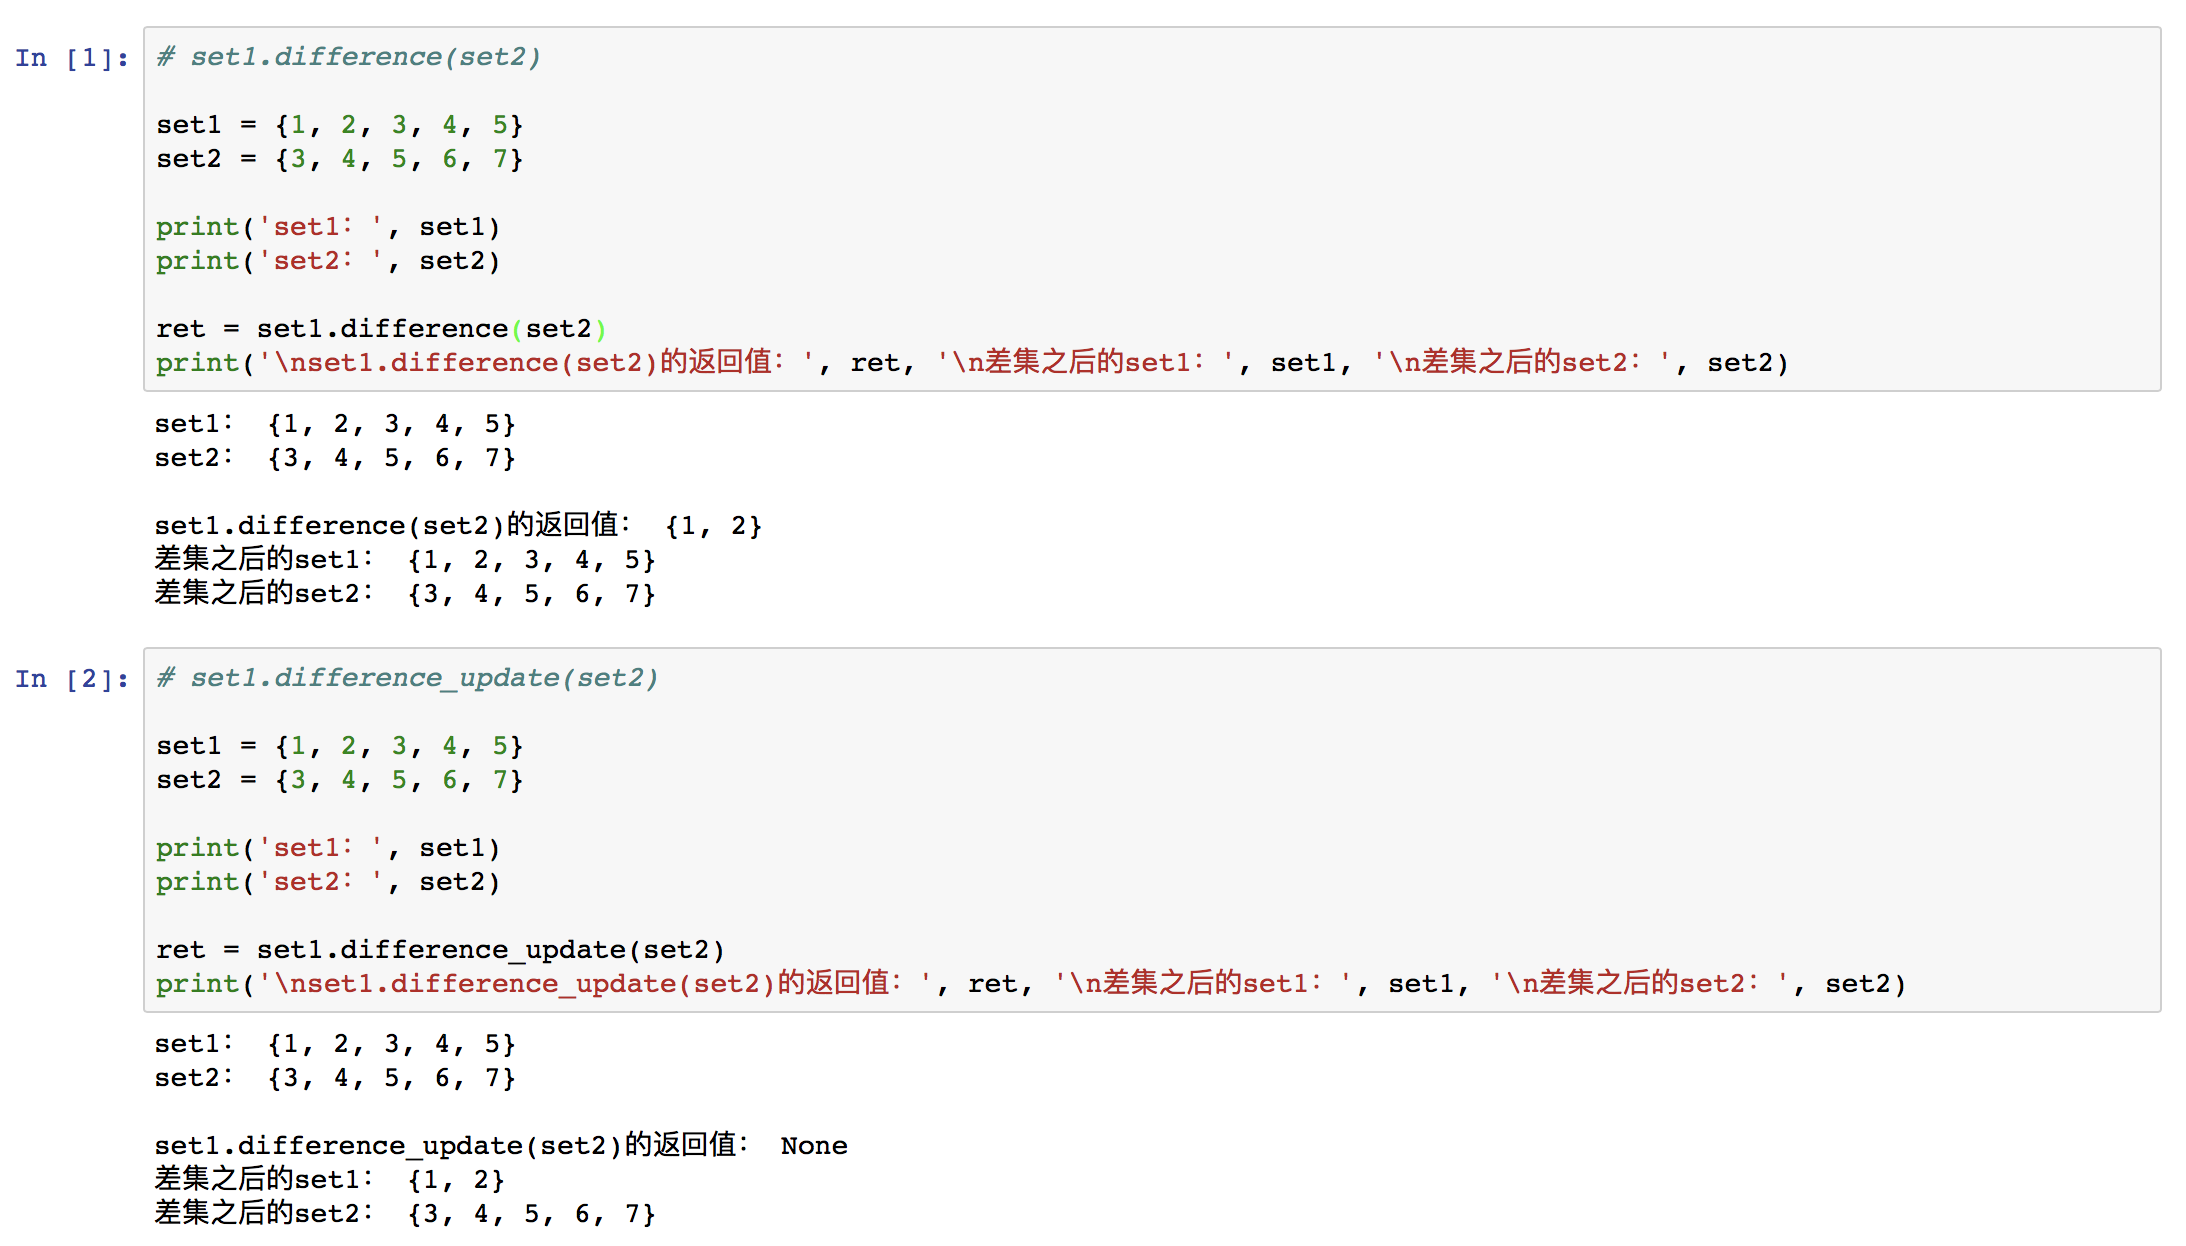 set1.difference(set2) 与 set1.difference_update(set2)